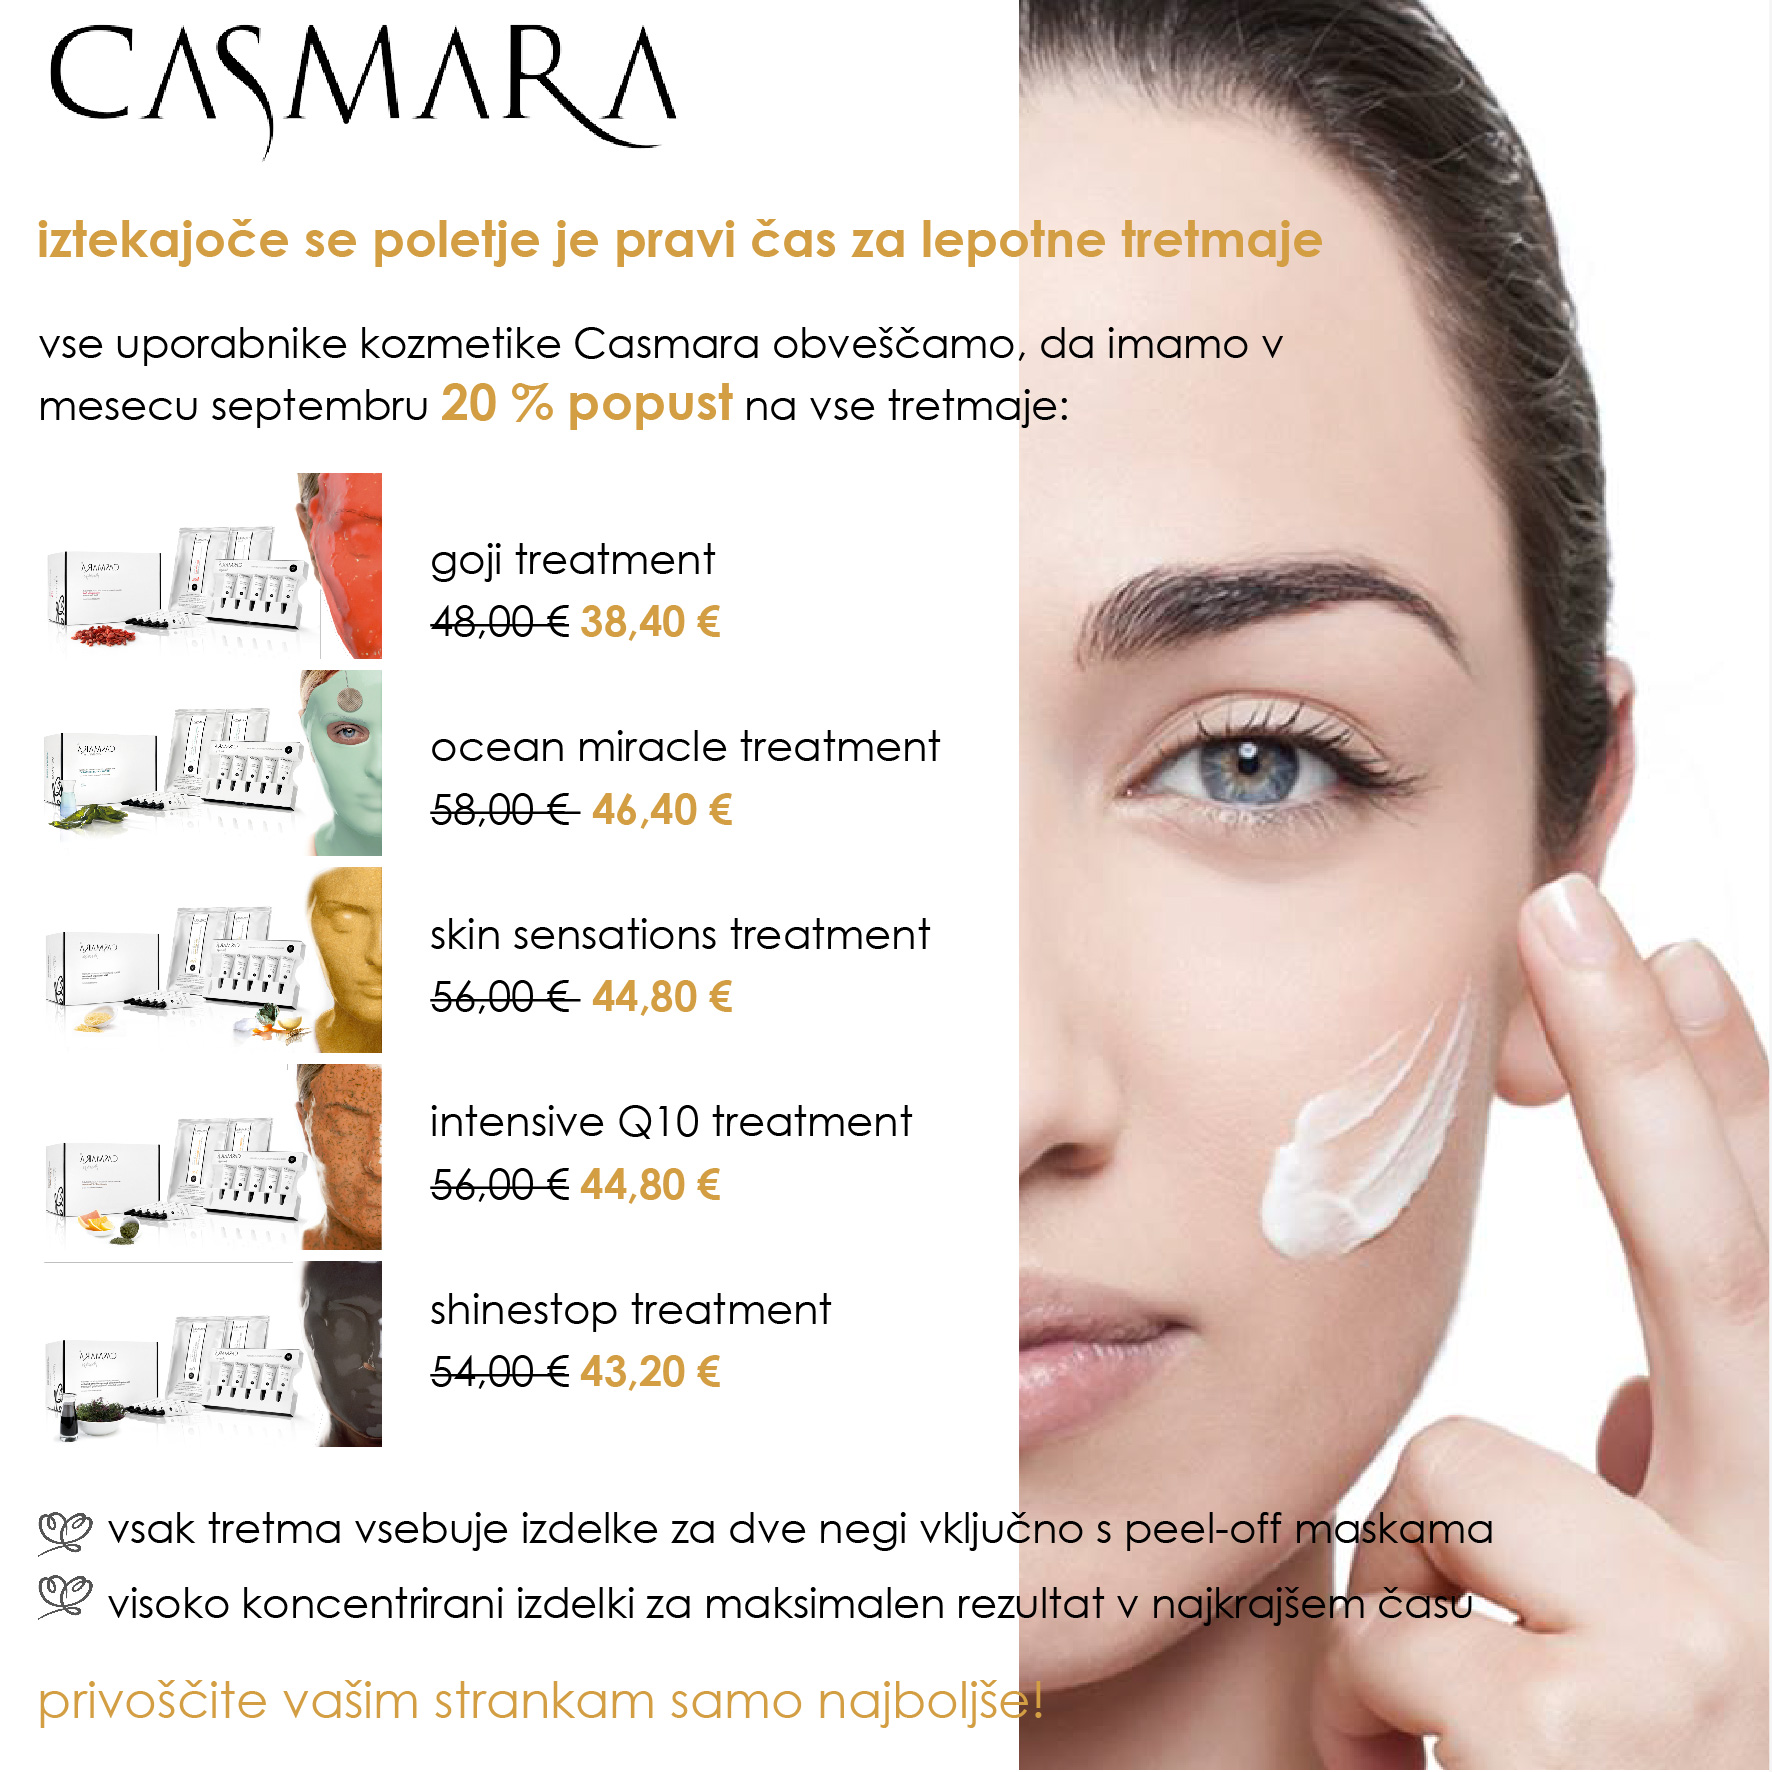 Promocijske cene Casmara treatments